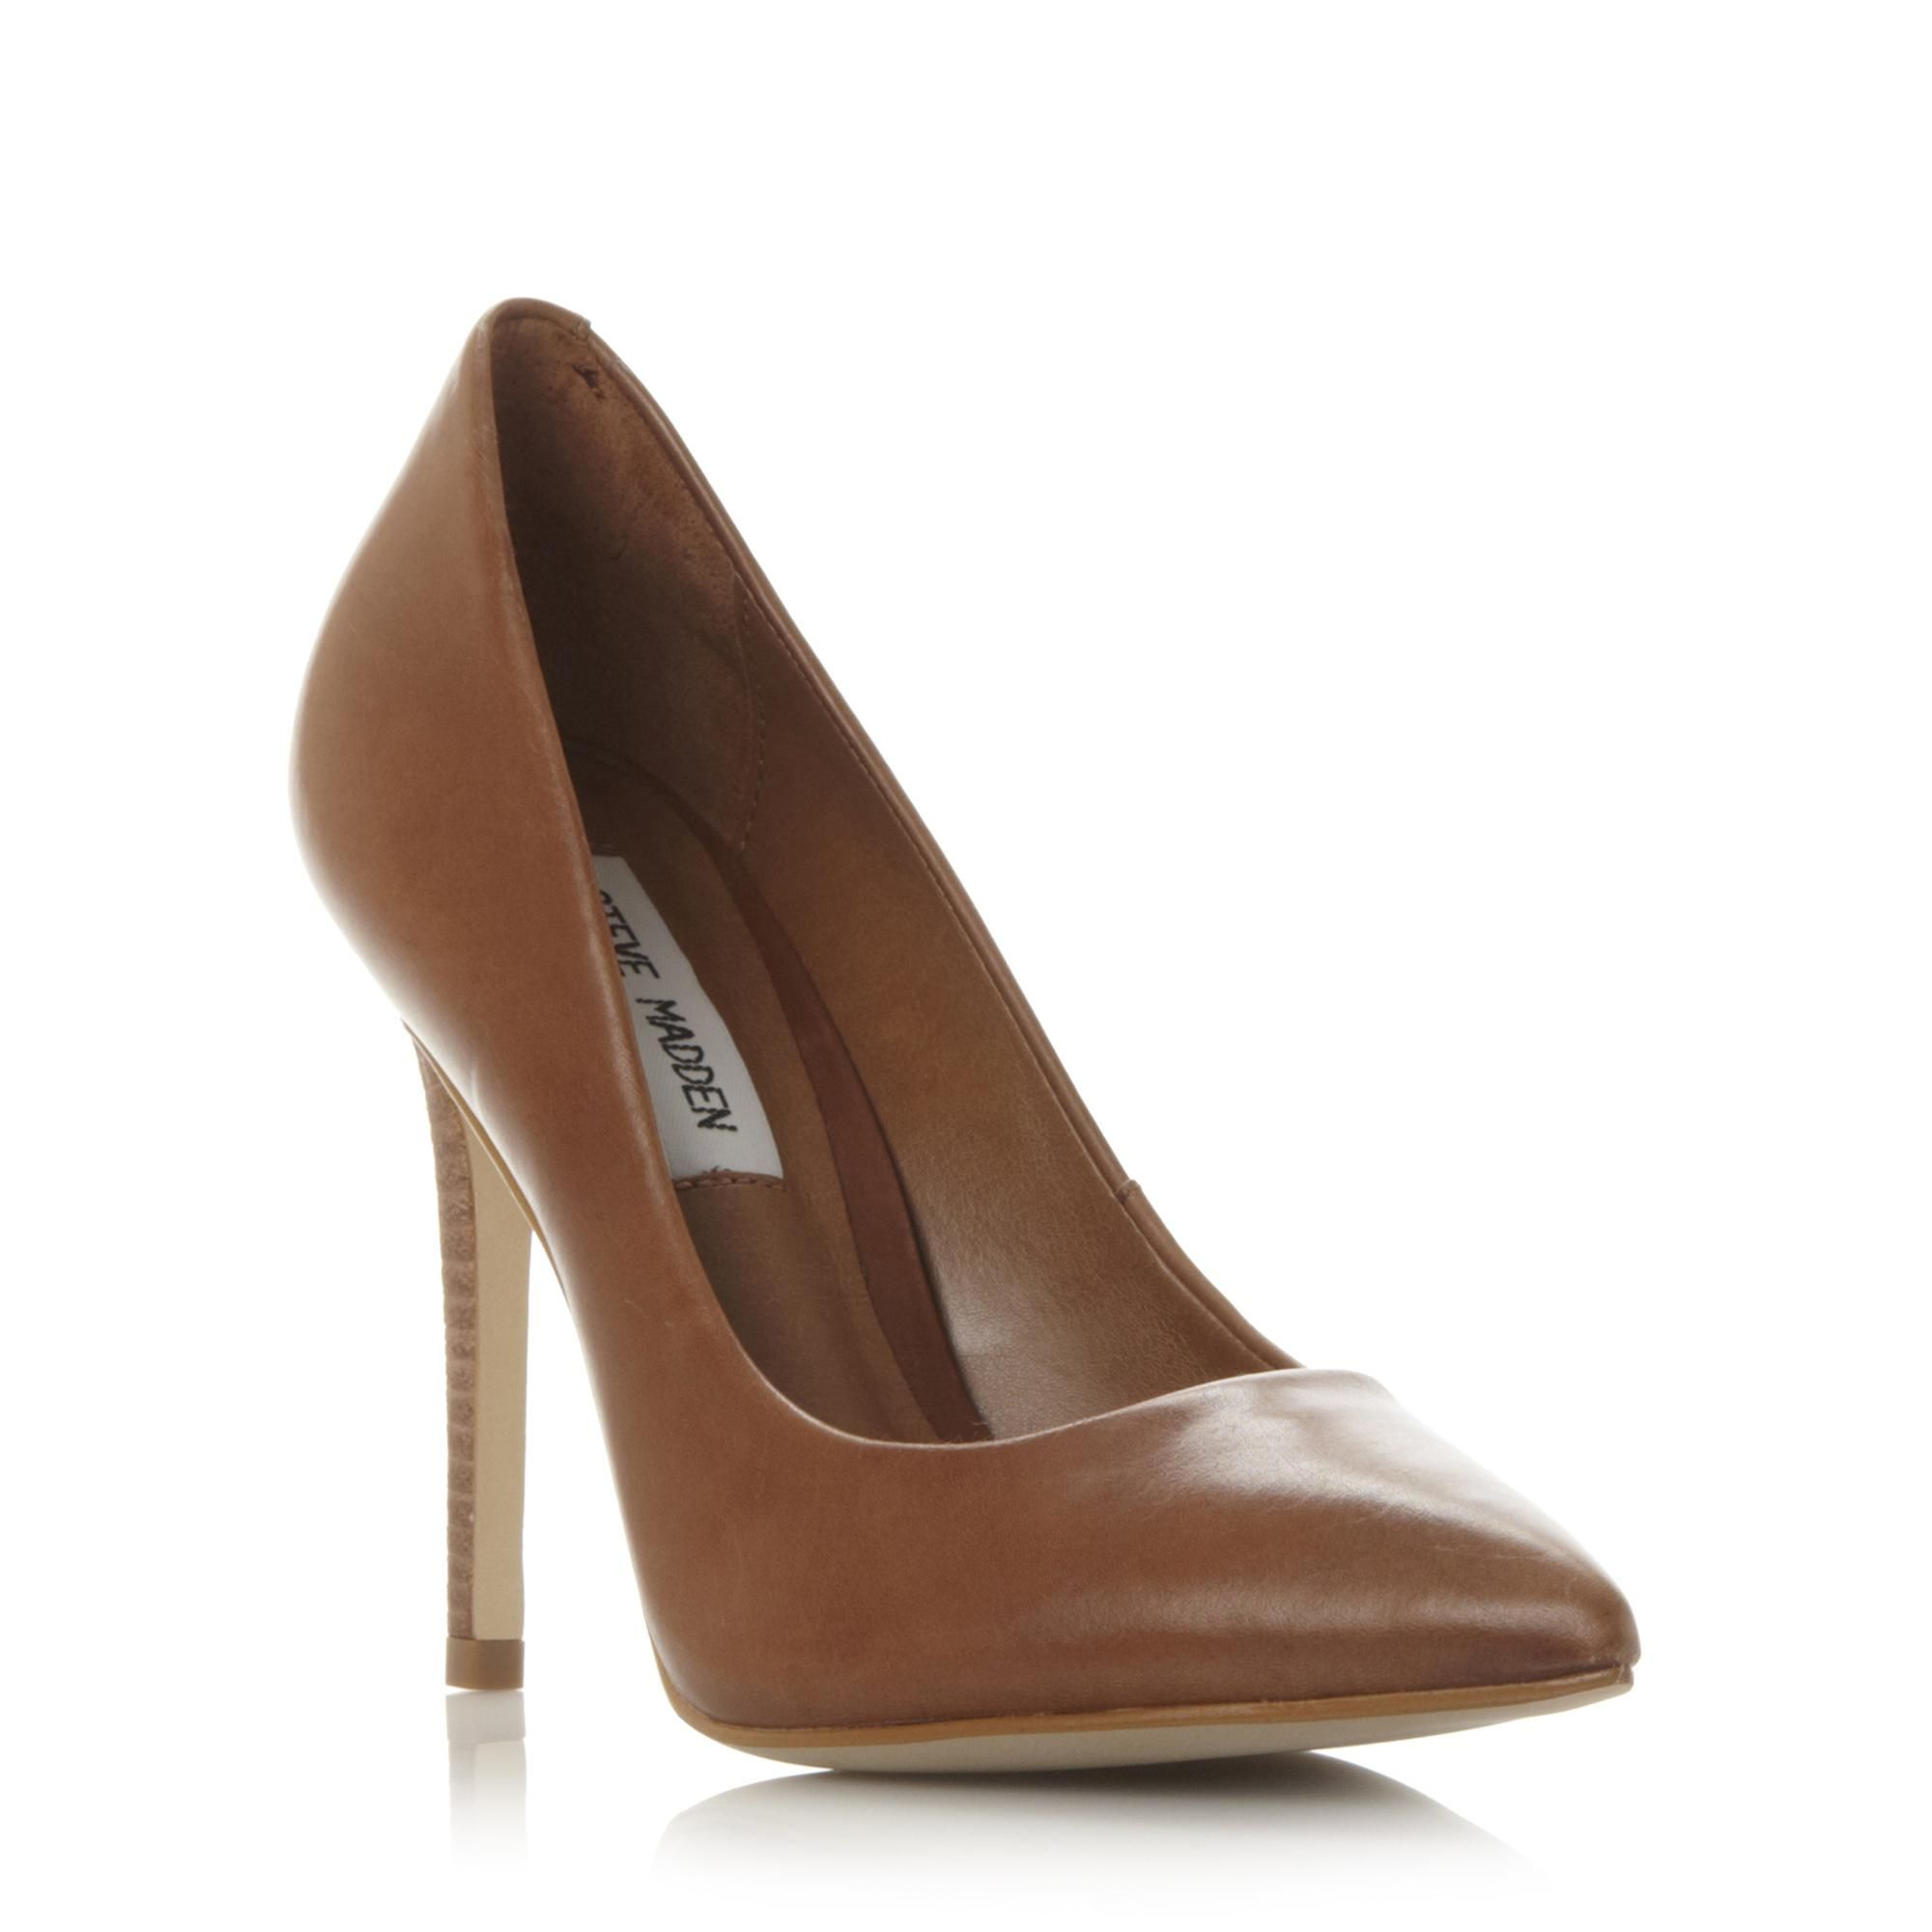 7aaf09bb58a STEVE MADDEN PROTO 2 SM - Pointed Toe Court Shoe - tan | Dune Shoes ...